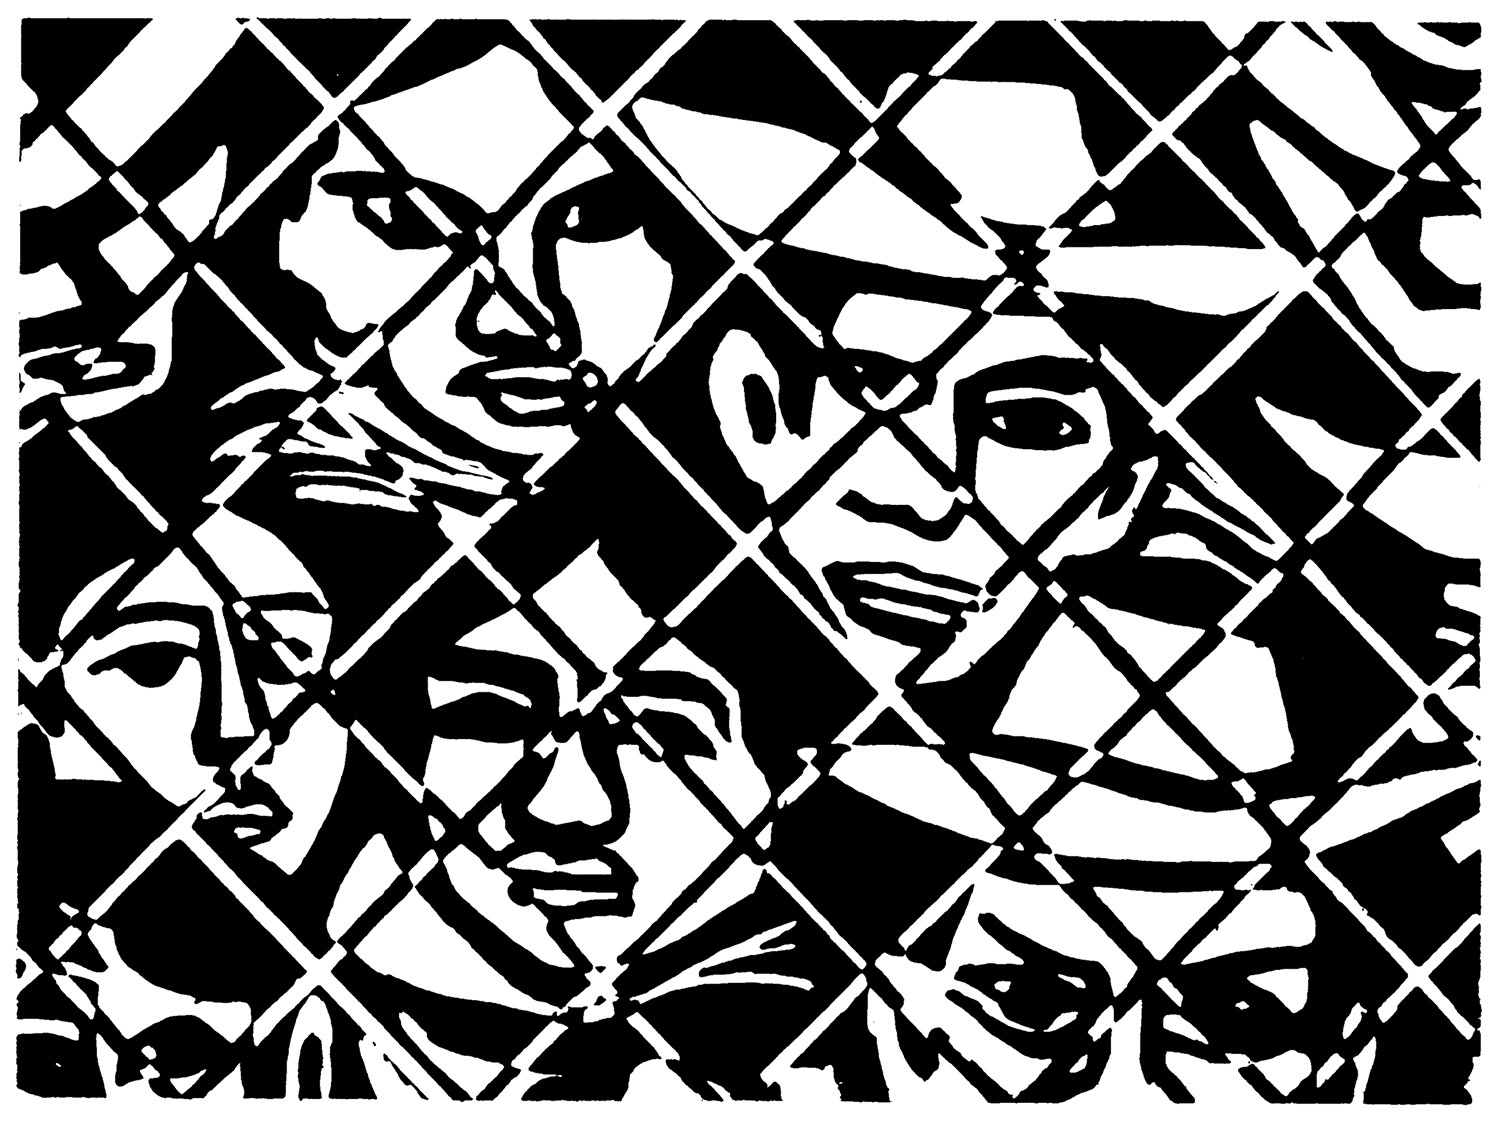 people-behind-chain-link1